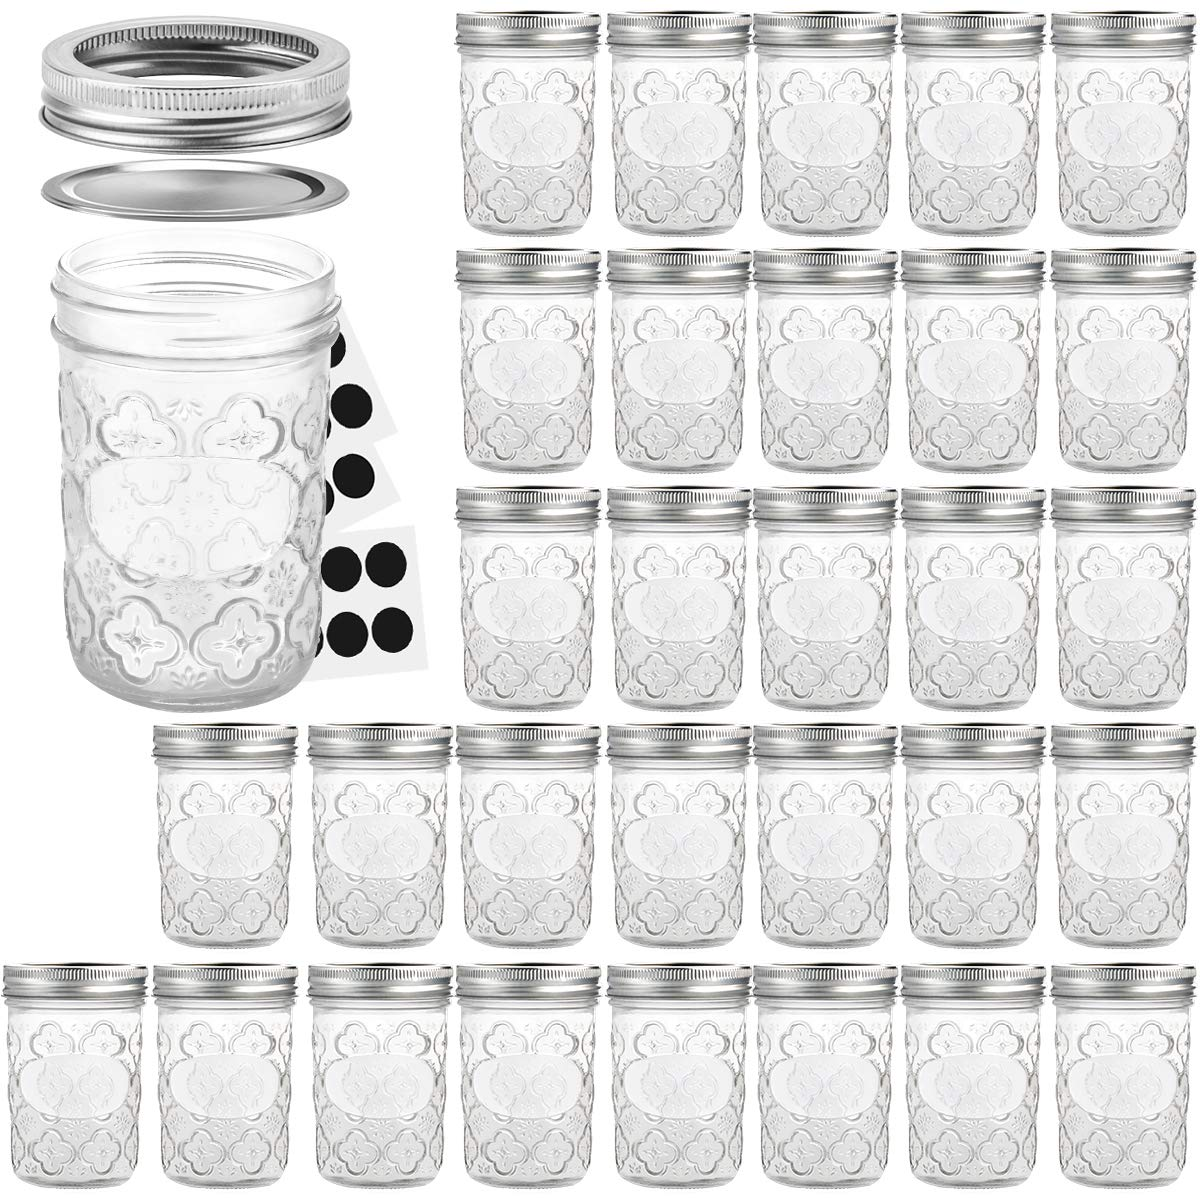 Mason Jars 8 OZ, VERONES Canning Jars Jelly Jars With Regular Lids and Bands, Ideal for Jam, Honey, Wedding Favors, Shower Favors, Baby Foods, 30 PACK